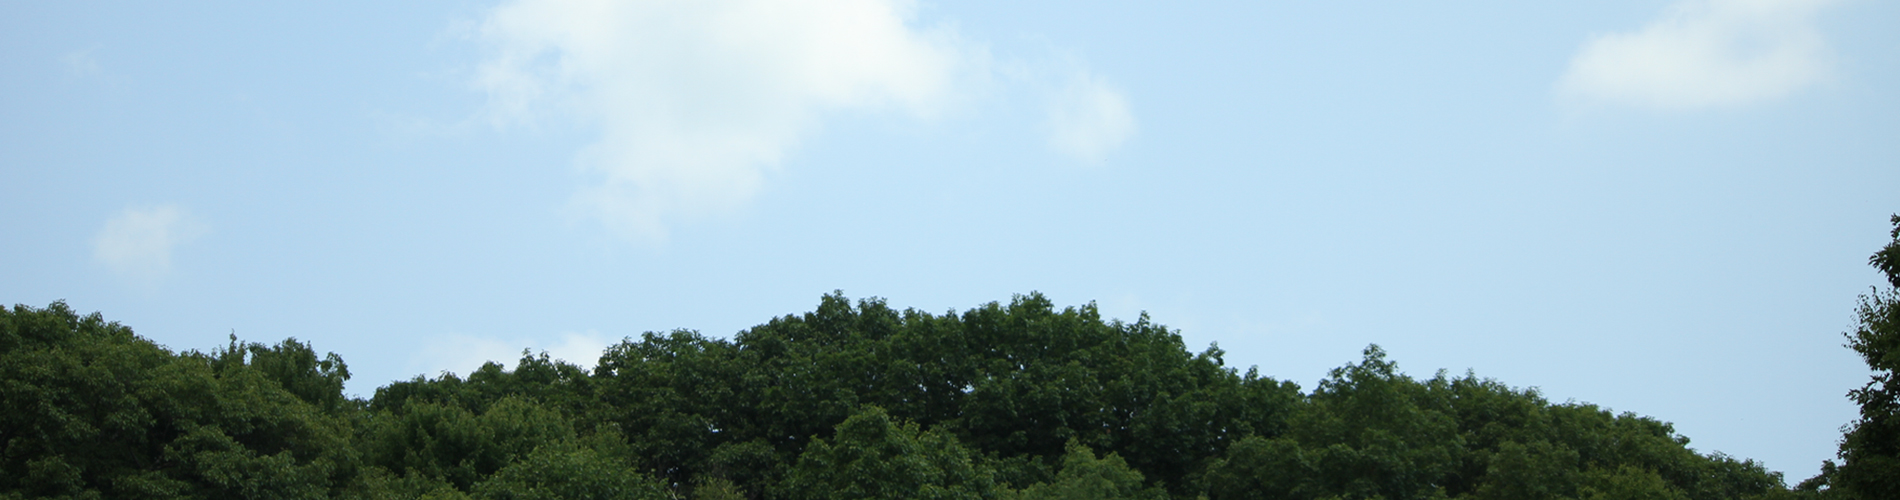 Sky and trees photo